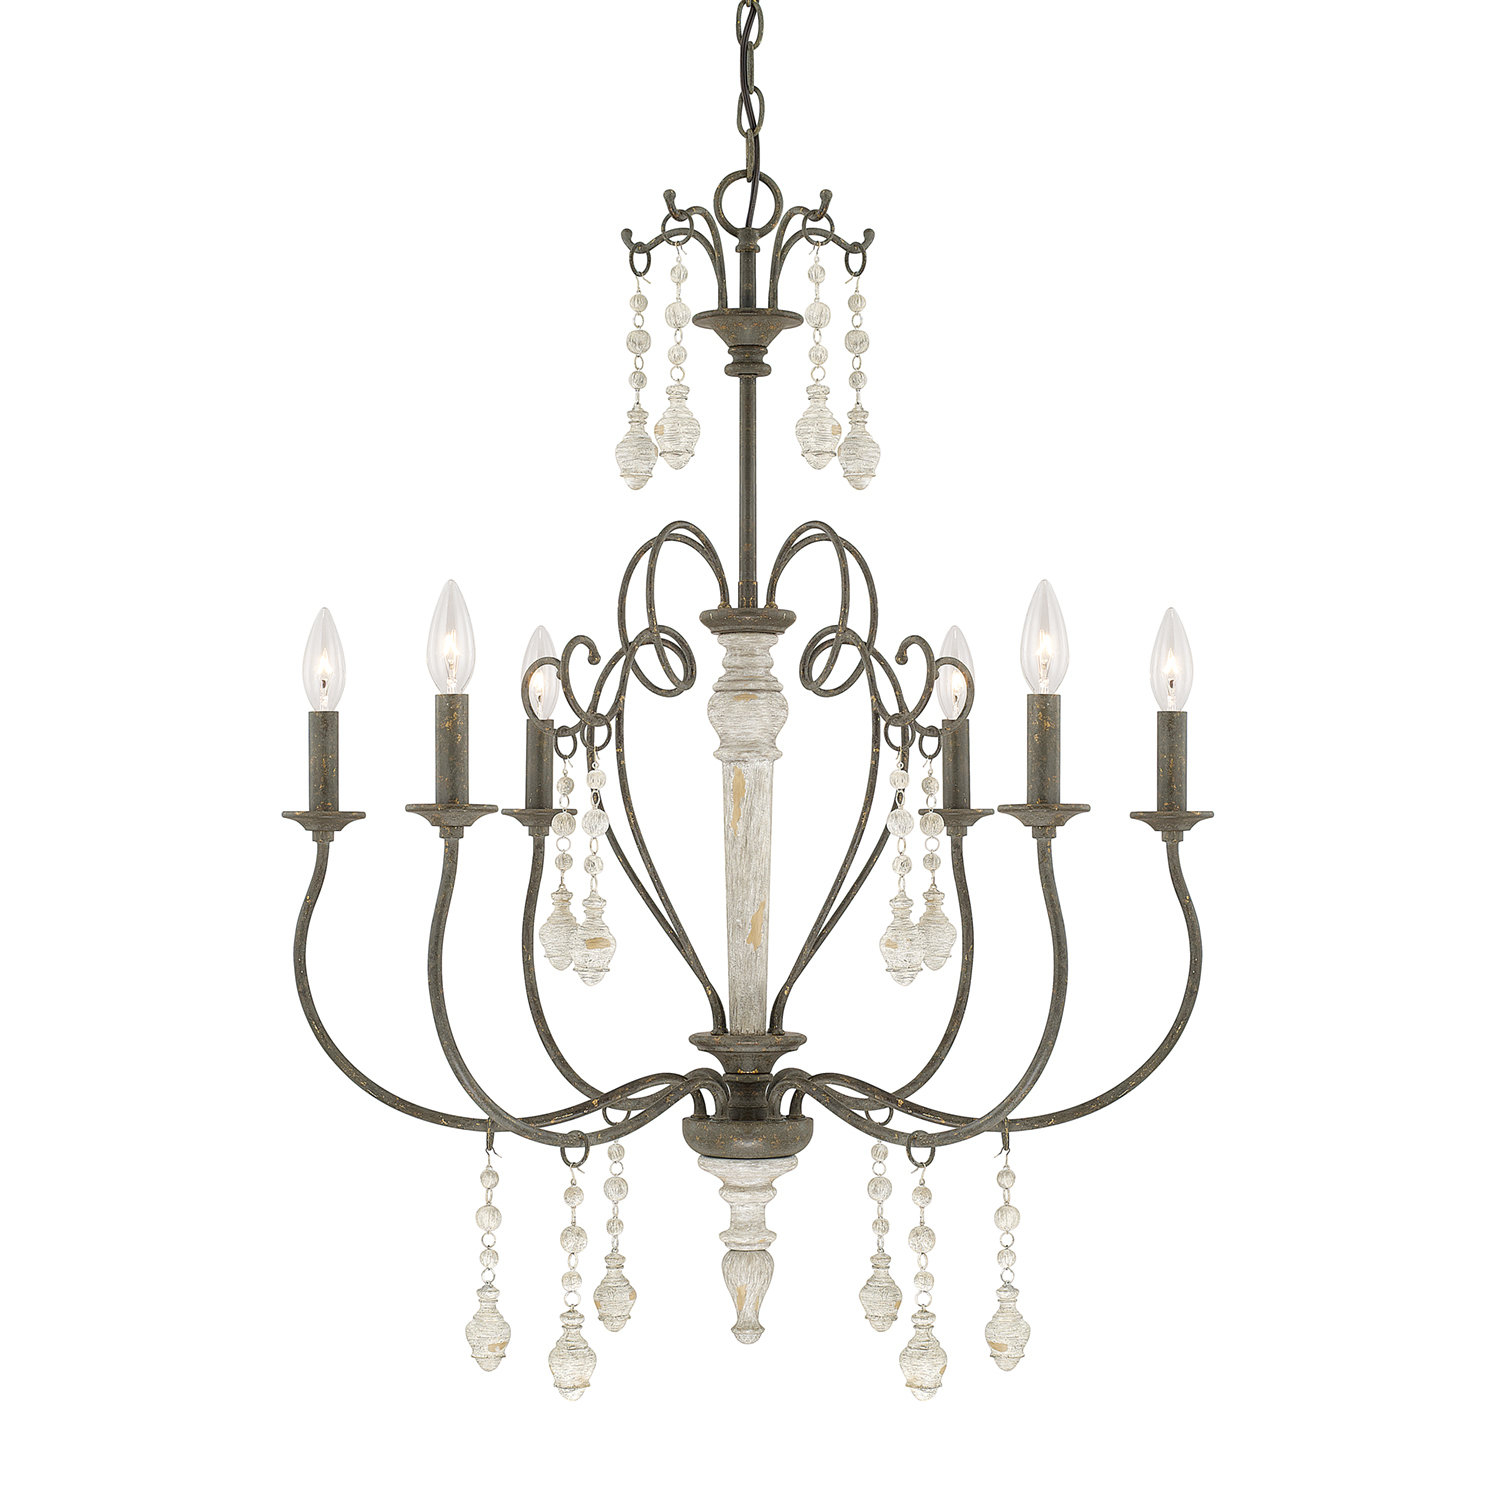 Bouchette Traditional 6 Light Candle Style Chandelier Regarding Bouchette Traditional 6 Light Candle Style Chandeliers (View 3 of 30)